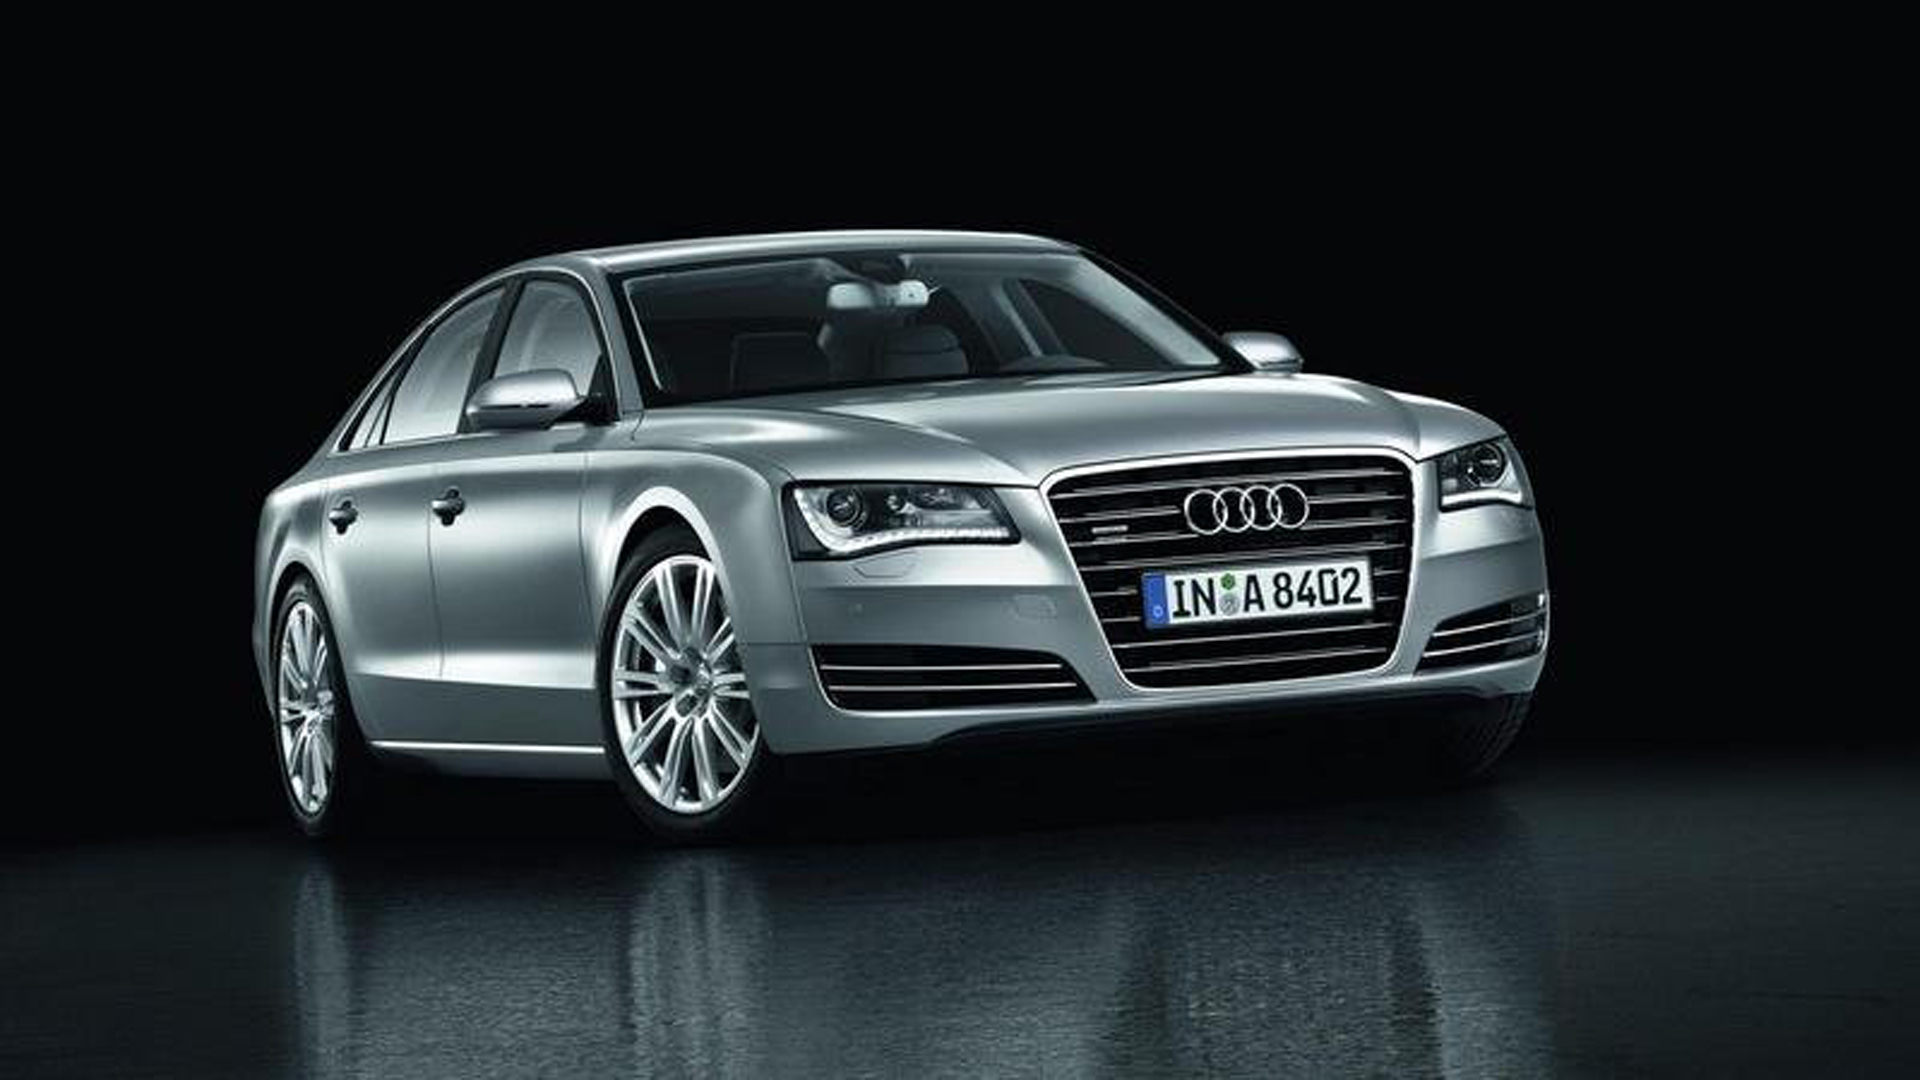 2013 Audi A8 (View 3 of 6)